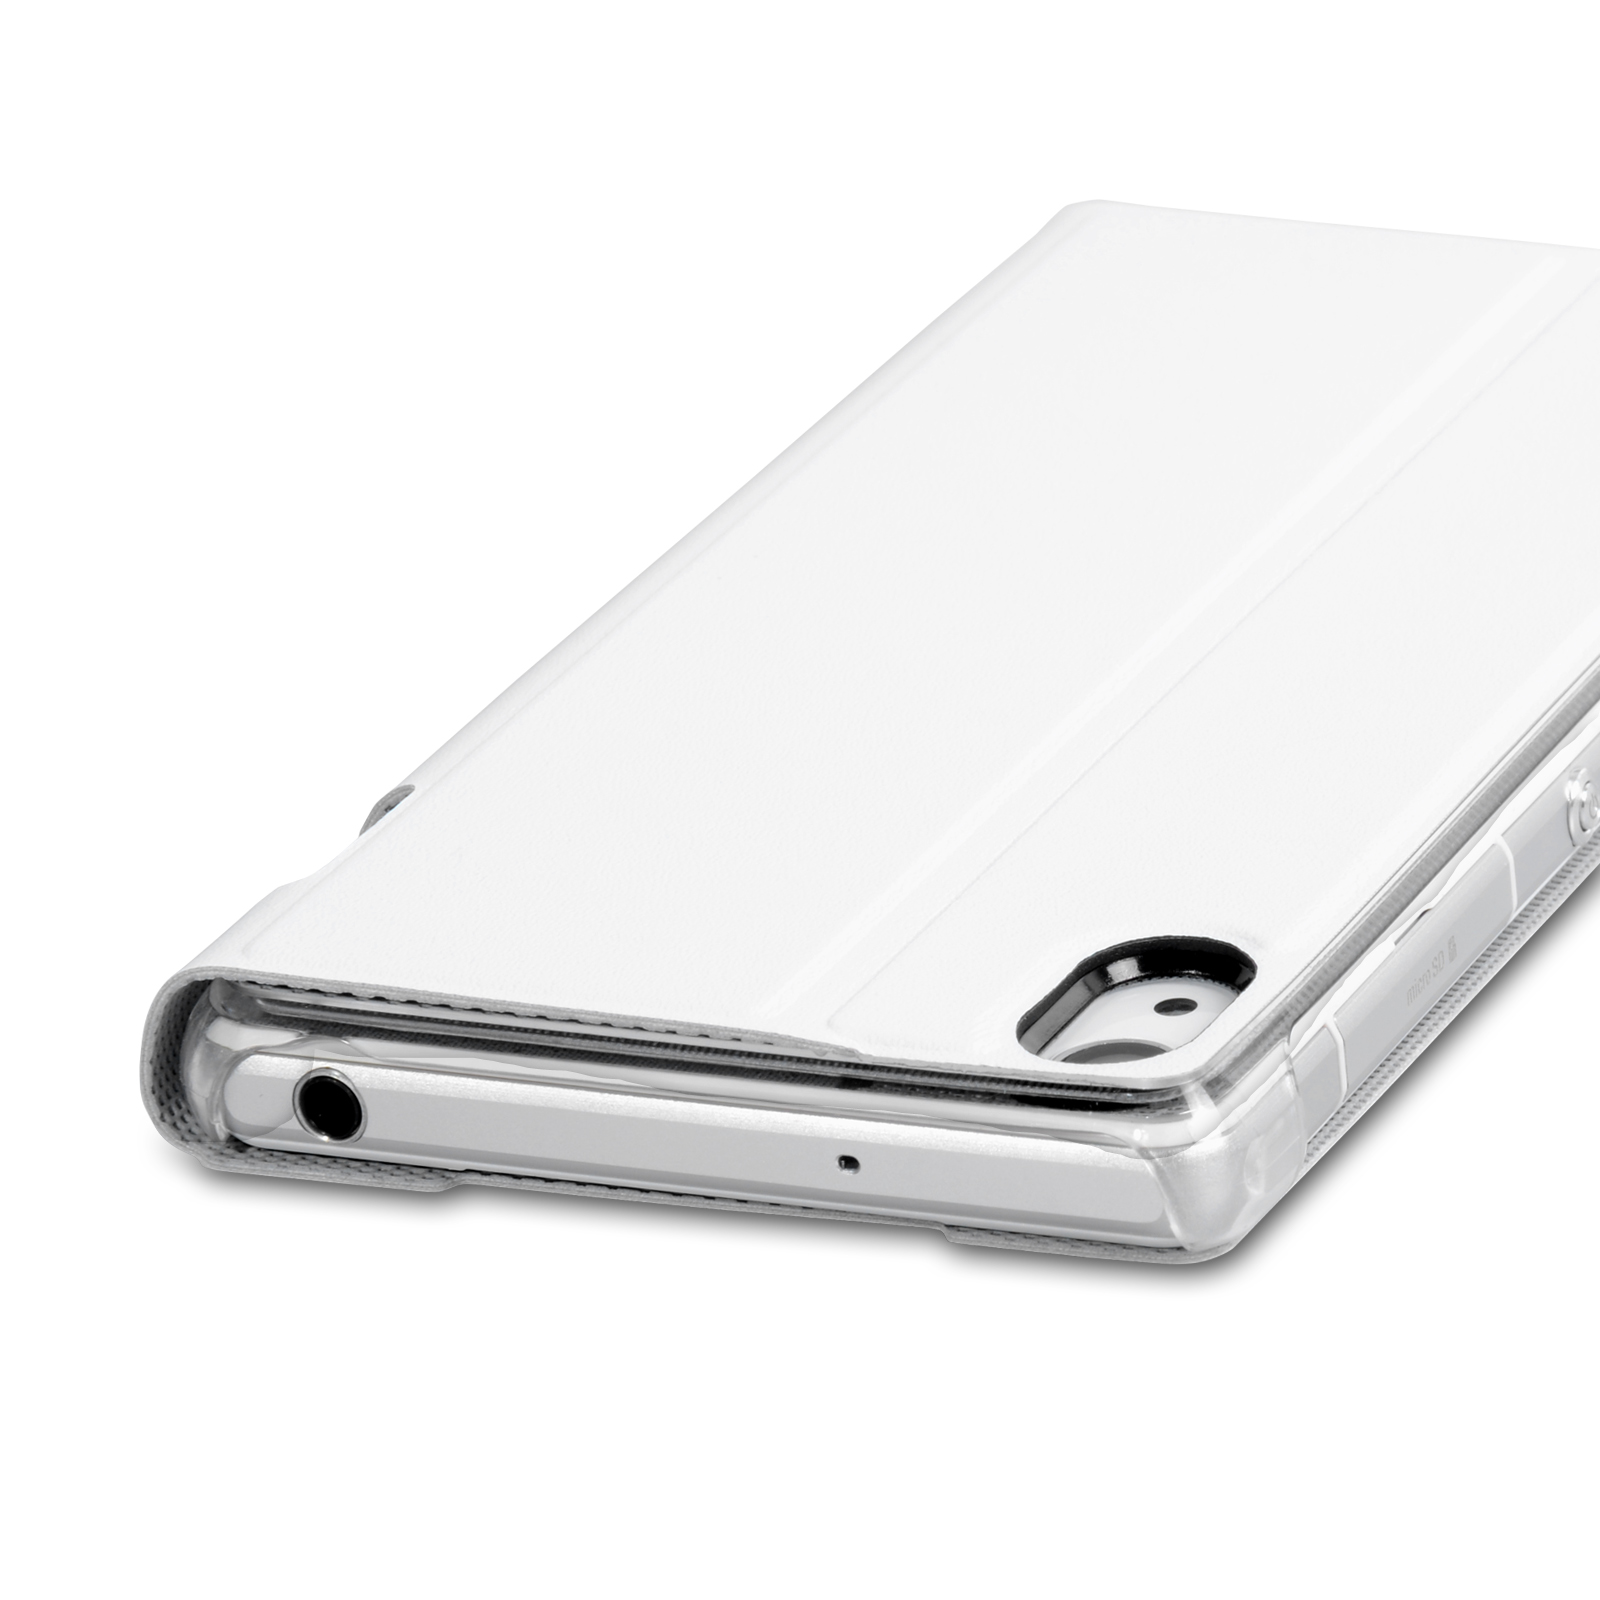 Roxfit Standing Book Case for Sony Xperia Z2 - Polar White